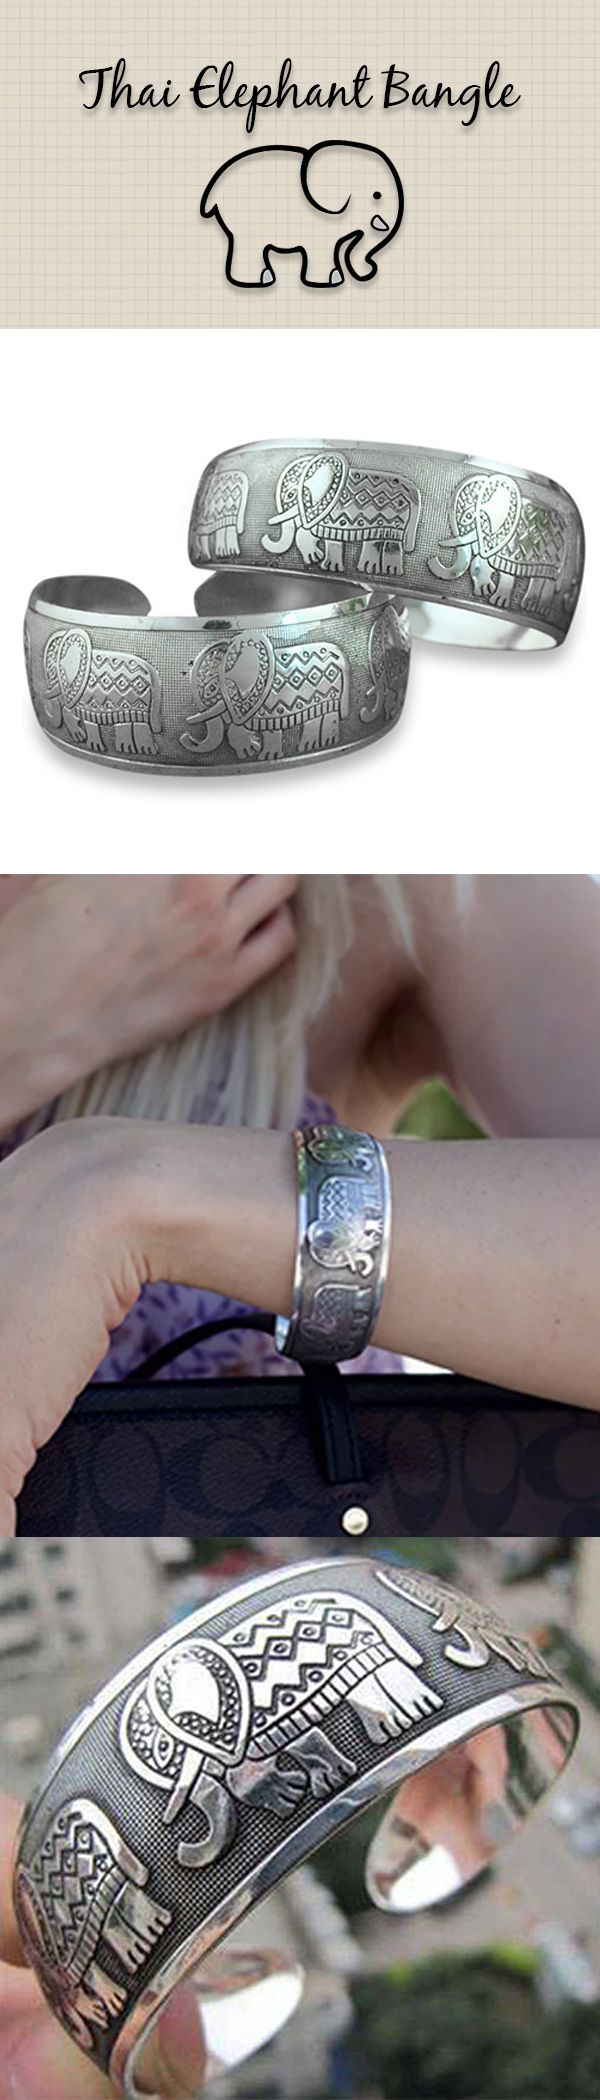 This beautiful Thai Five Elephant bangle will match any outfit and can be dressed up or down. This bracelet features an open design and can fit all wrist sizes. Comes in a velvet pouch.